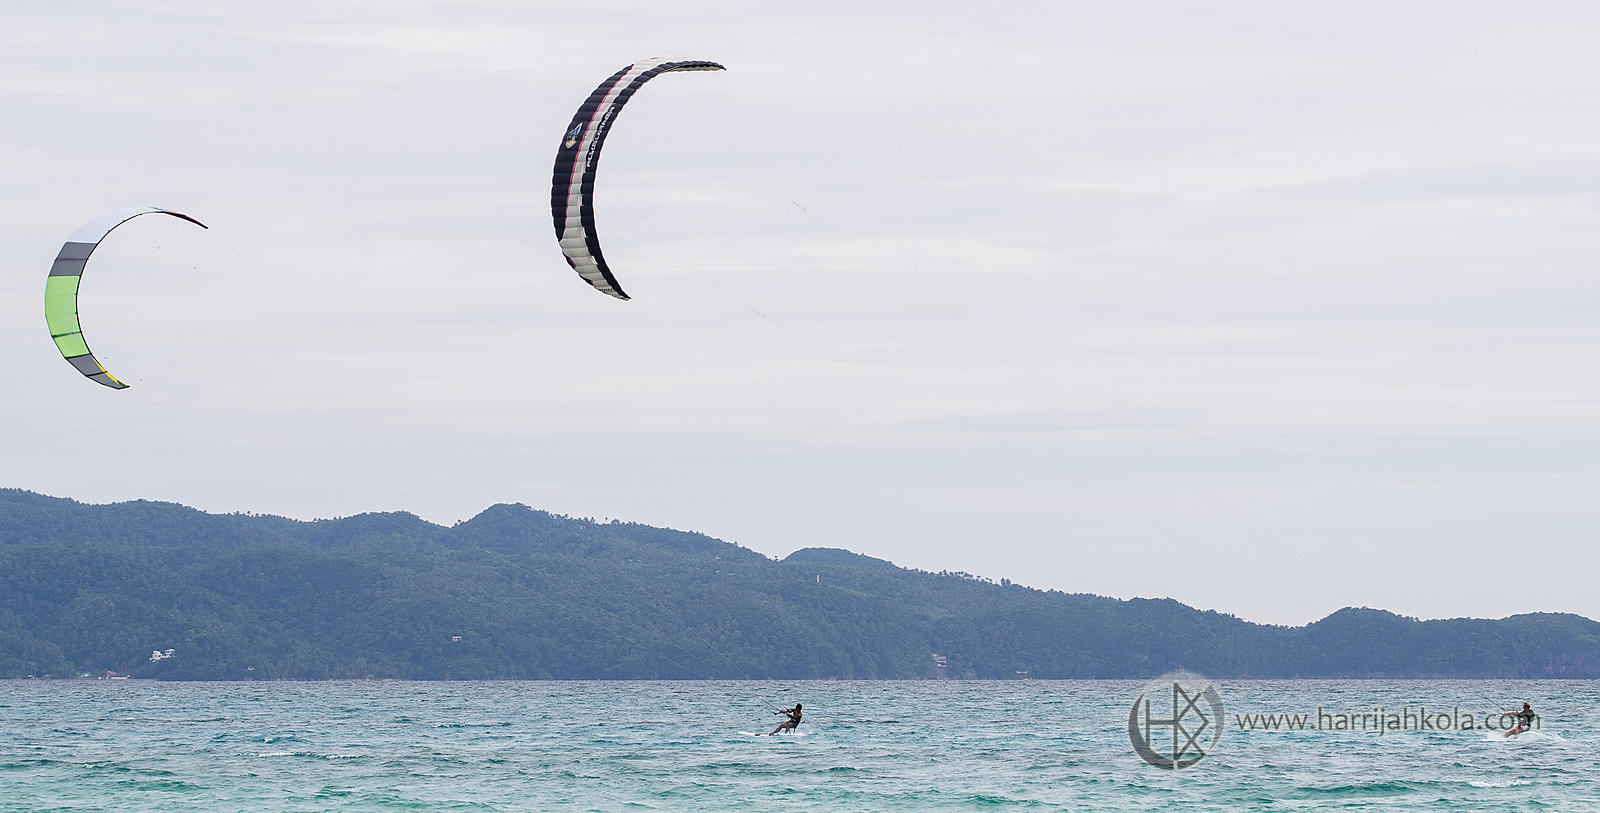 Philippines - Boracay (Kitesurfers - We're Going Fast)